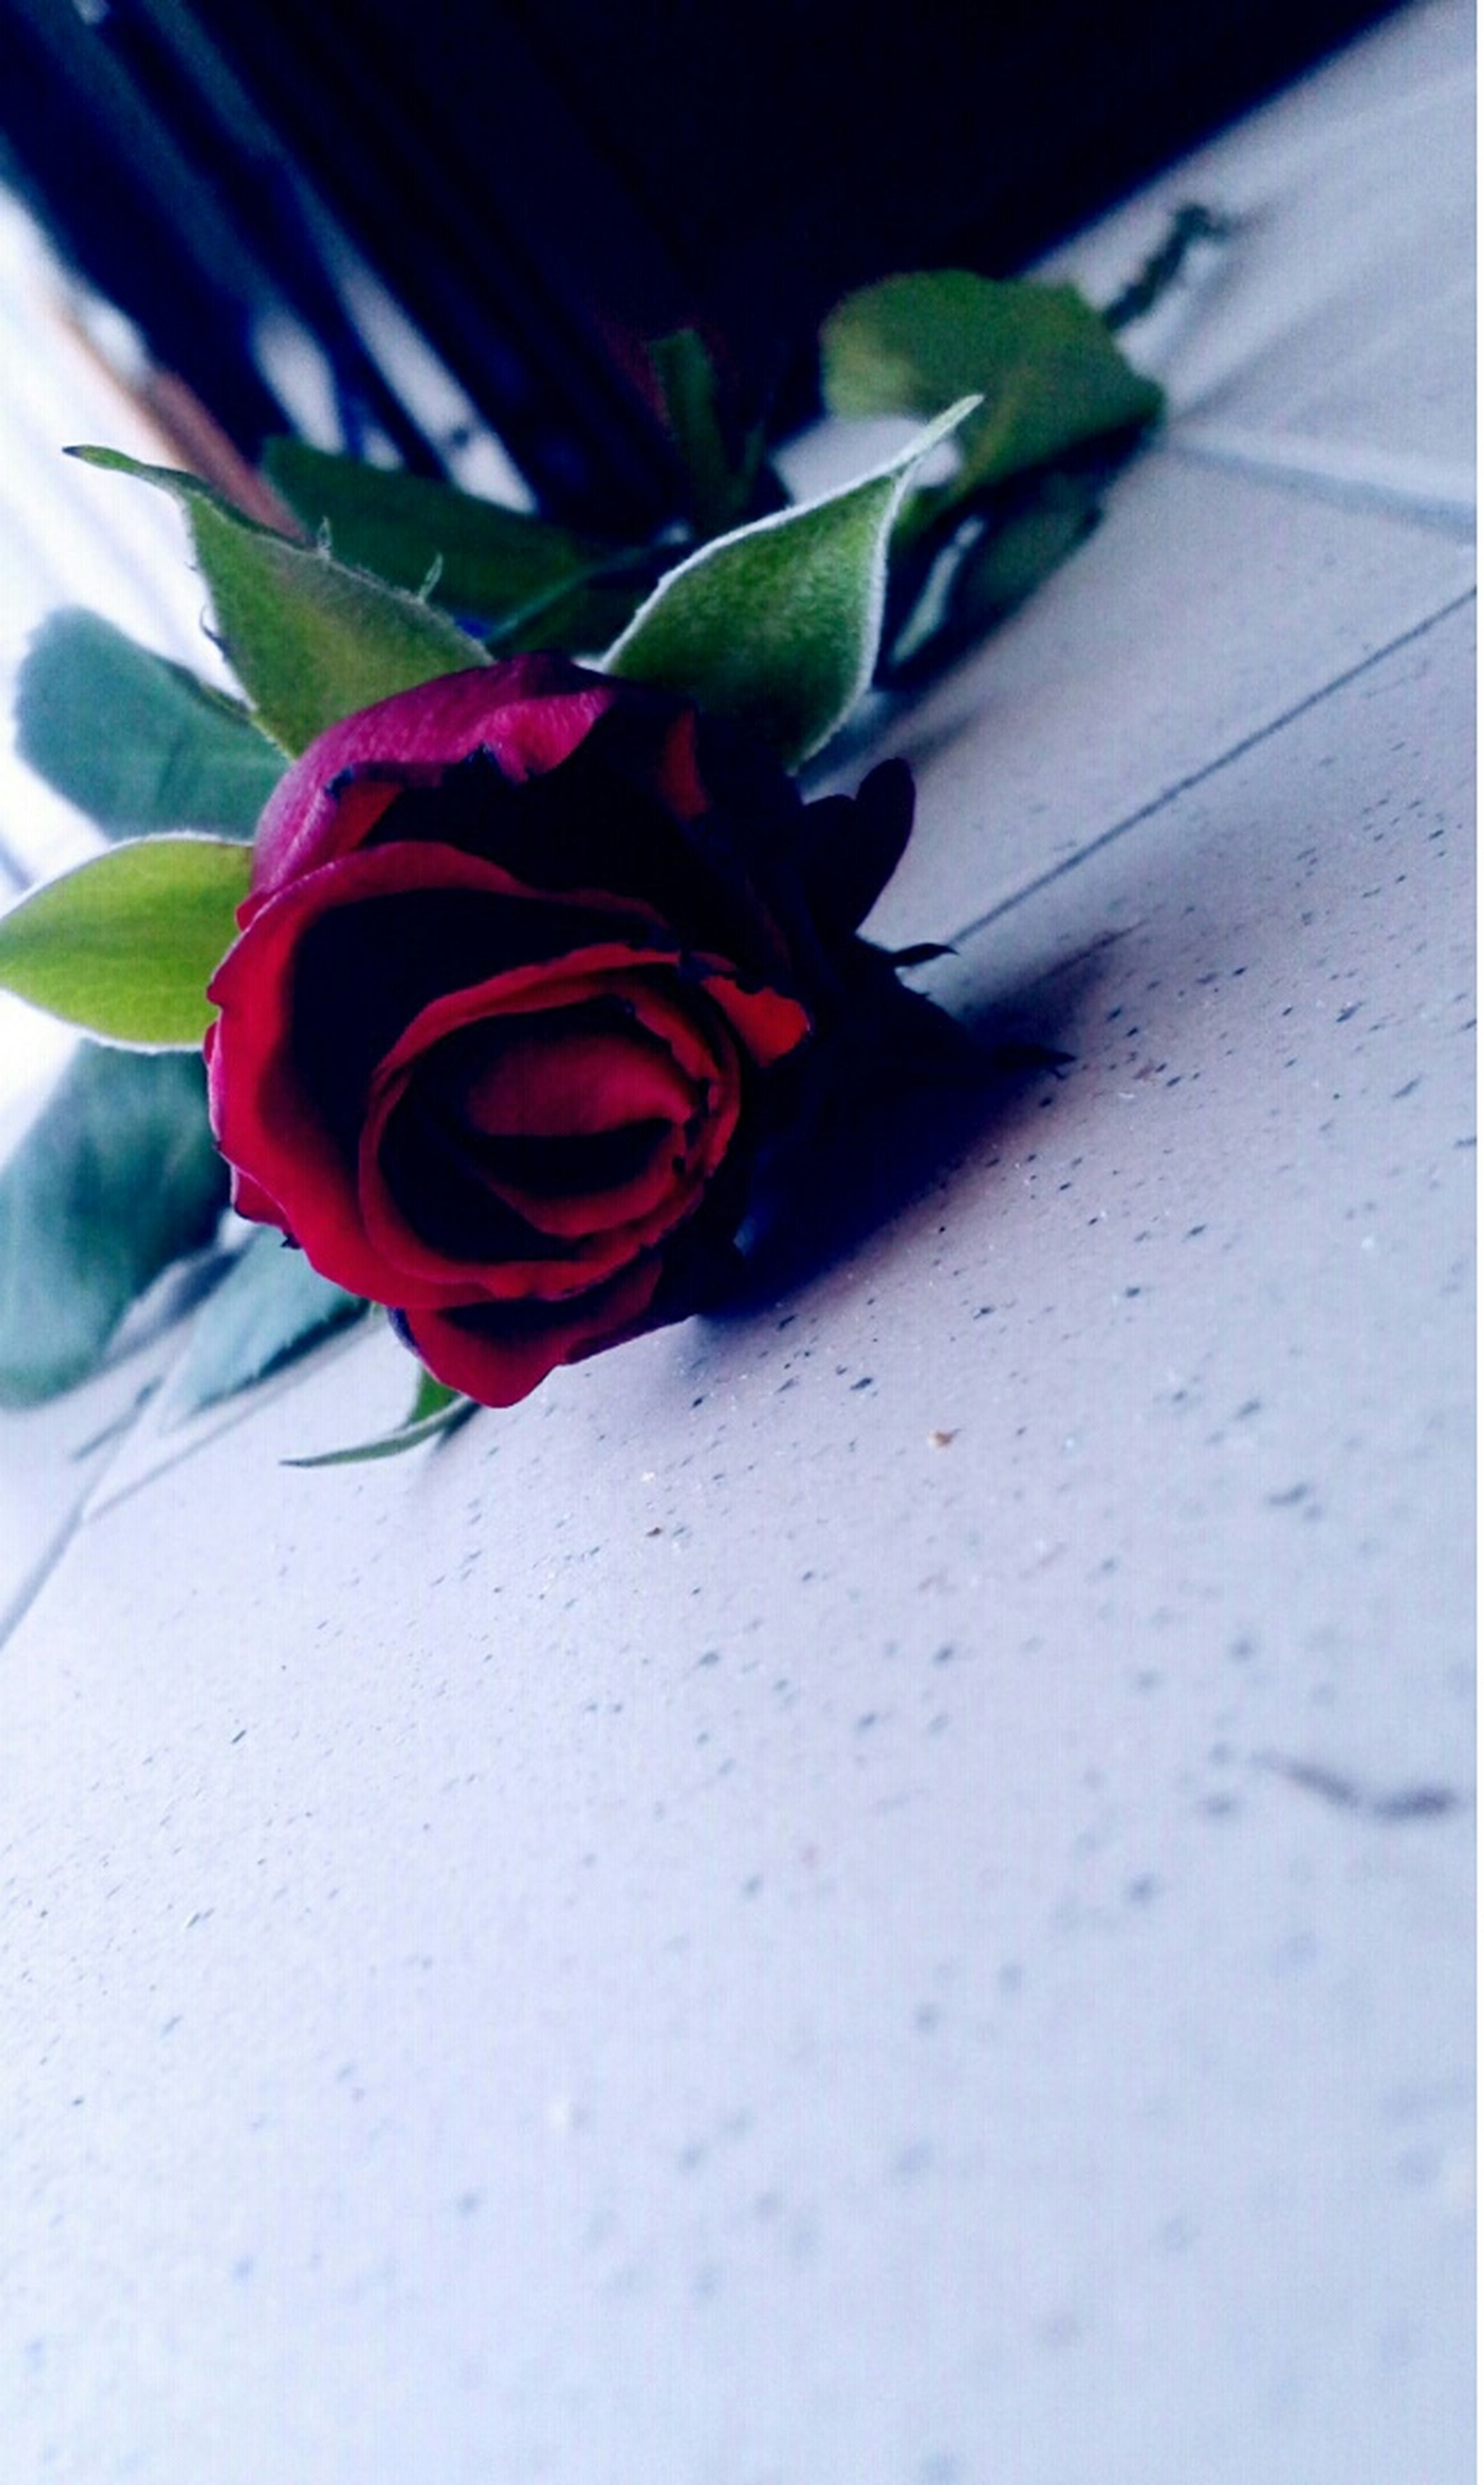 red, flower, leaf, plant, indoors, rose - flower, close-up, high angle view, freshness, fragility, petal, growth, potted plant, no people, green color, table, nature, pink color, sunlight, day